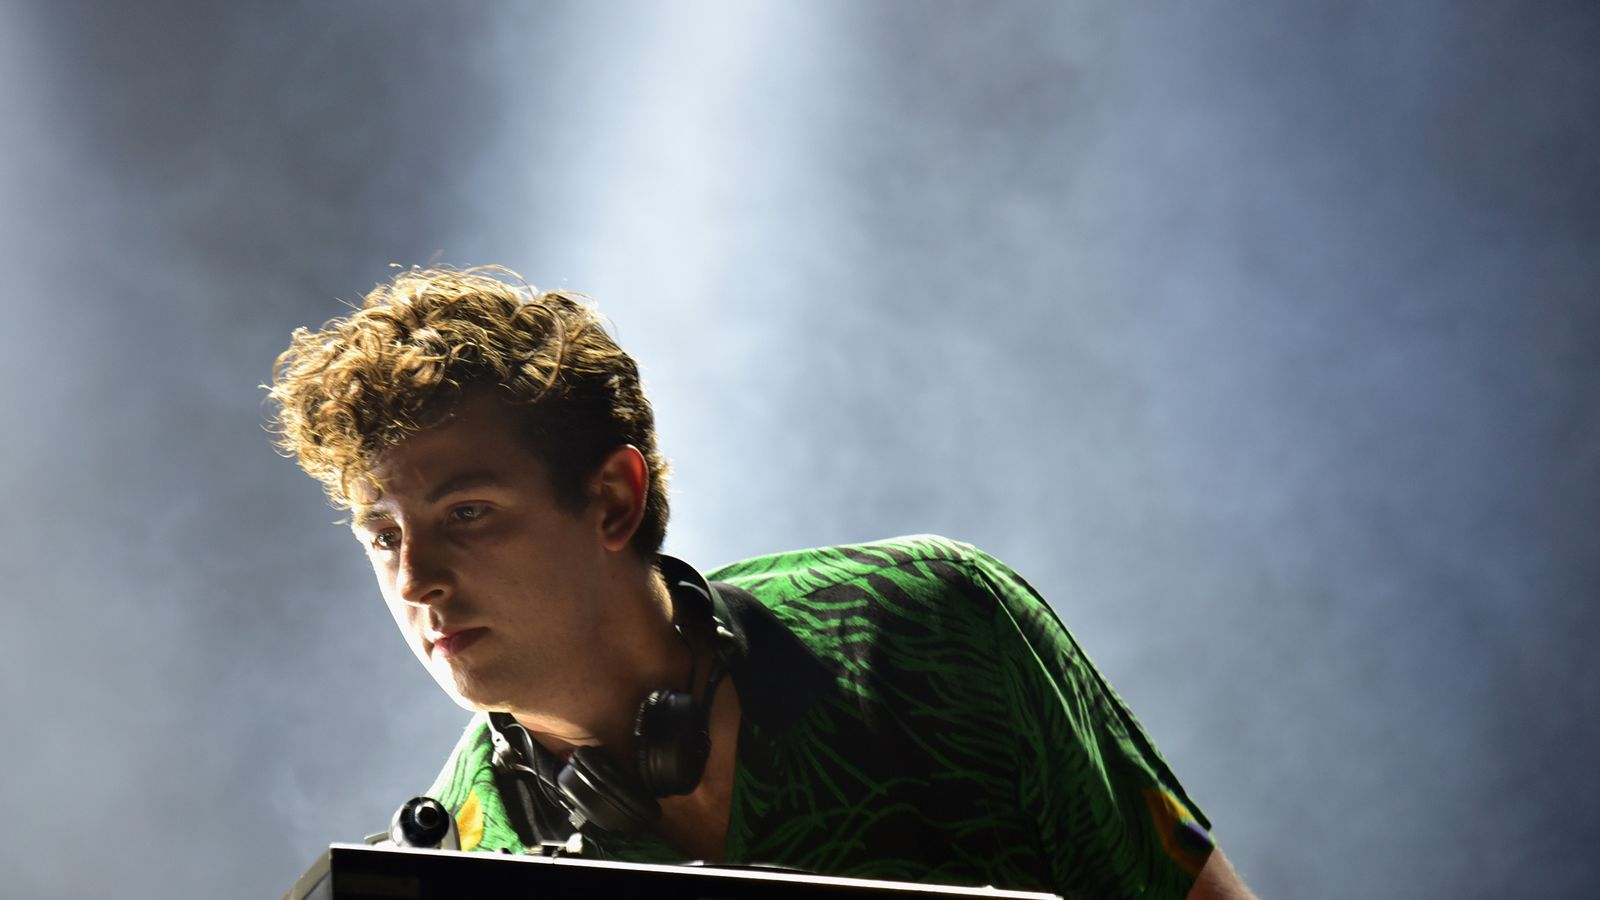 Apple is being sued over a sample in a Jamie xx song in an iPhone commercial